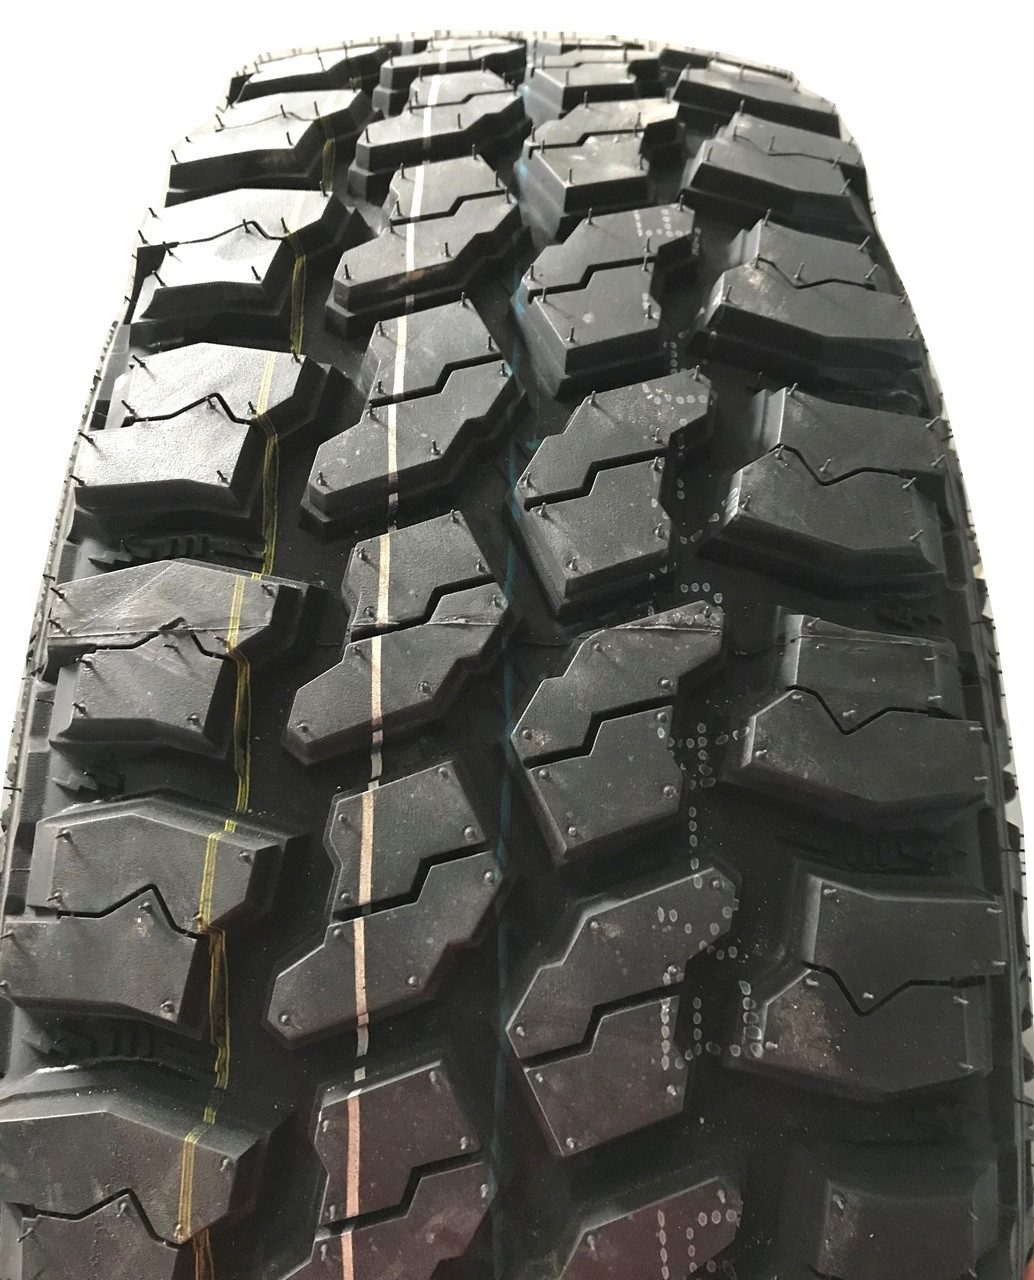 New Tire 275 65 18 Mud Claw Extreme MT 10 Ply LT275/65R18